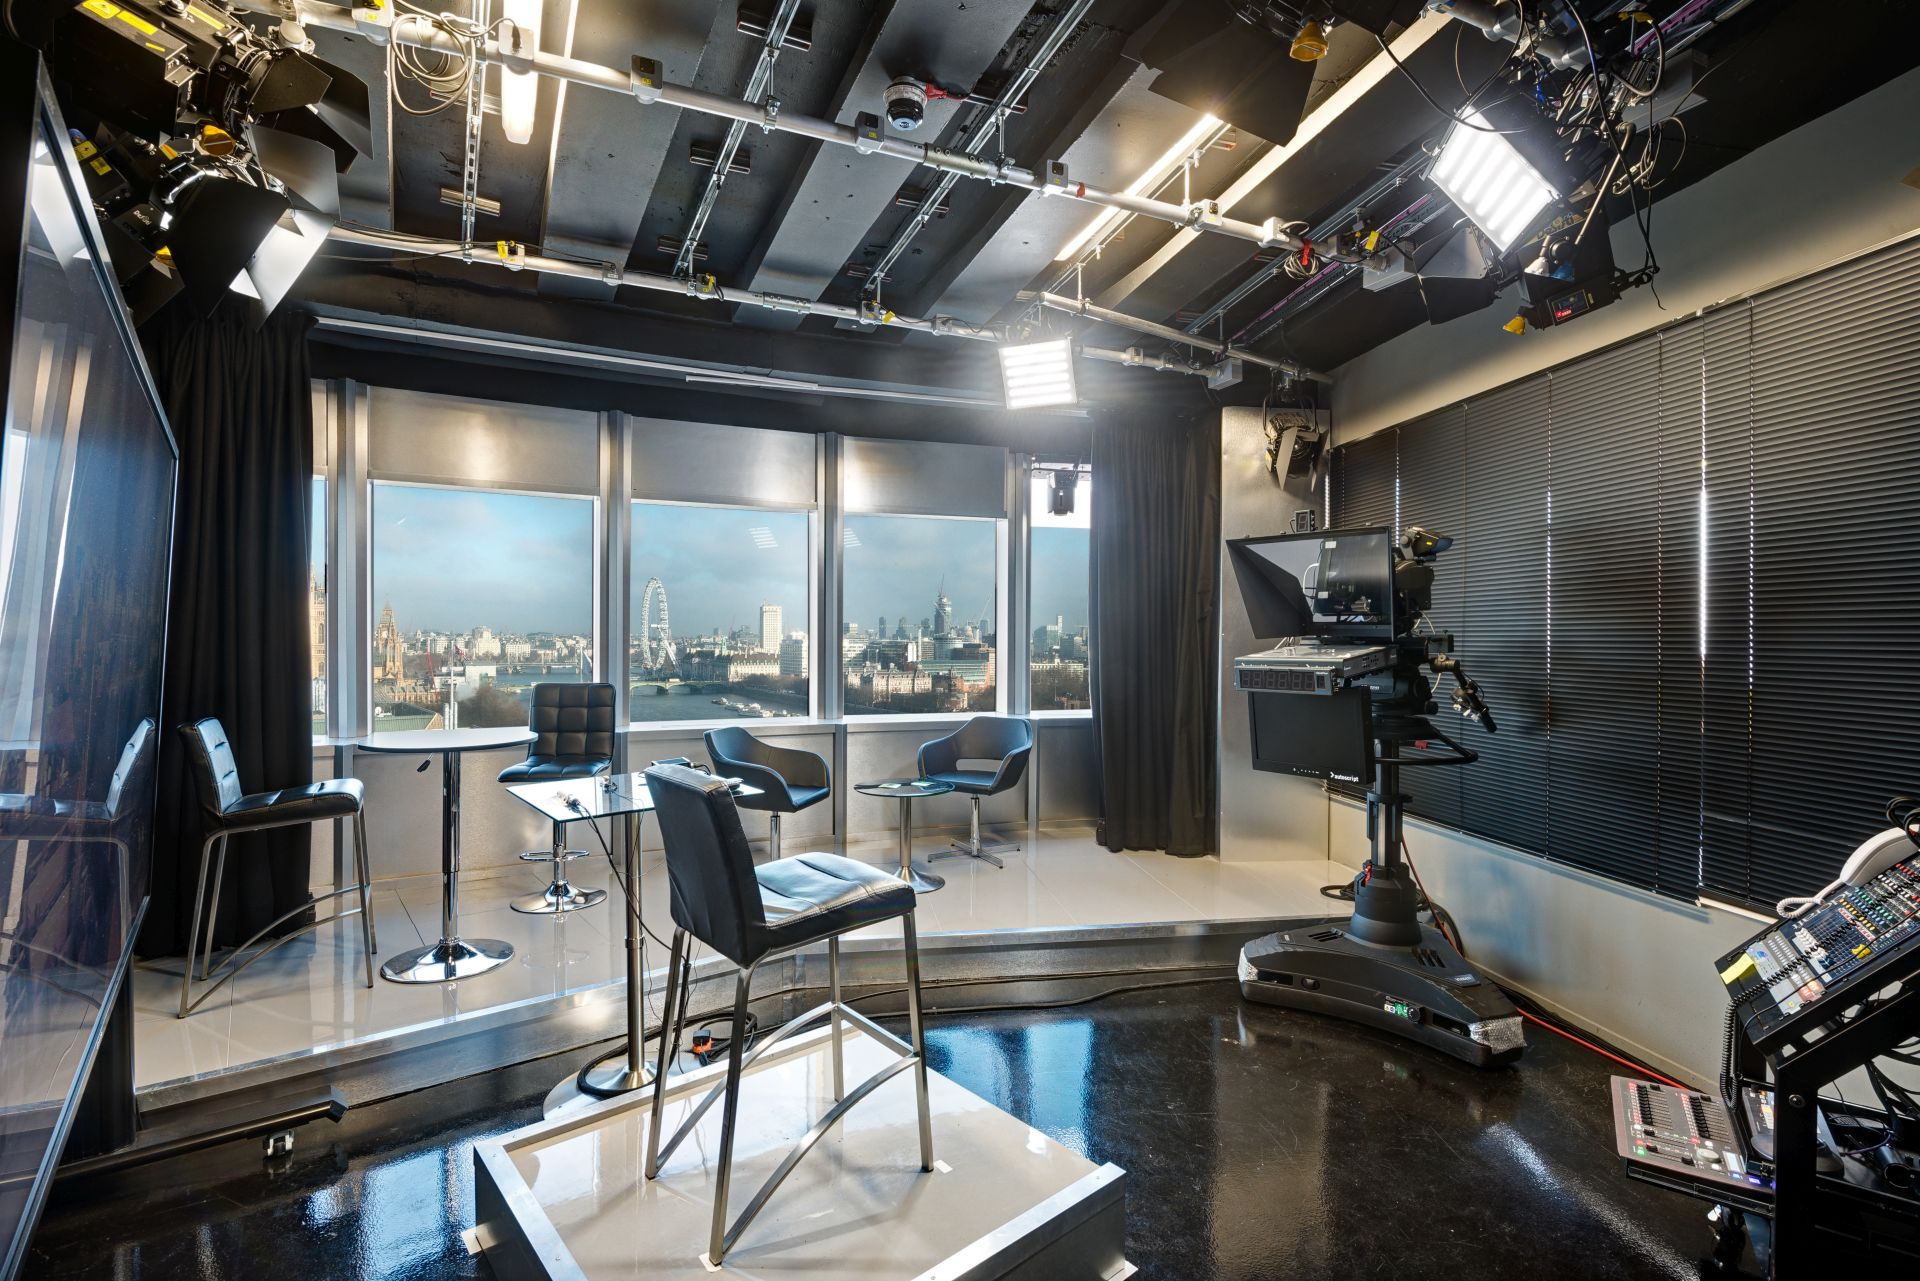 Russia TV Today Case Study Image